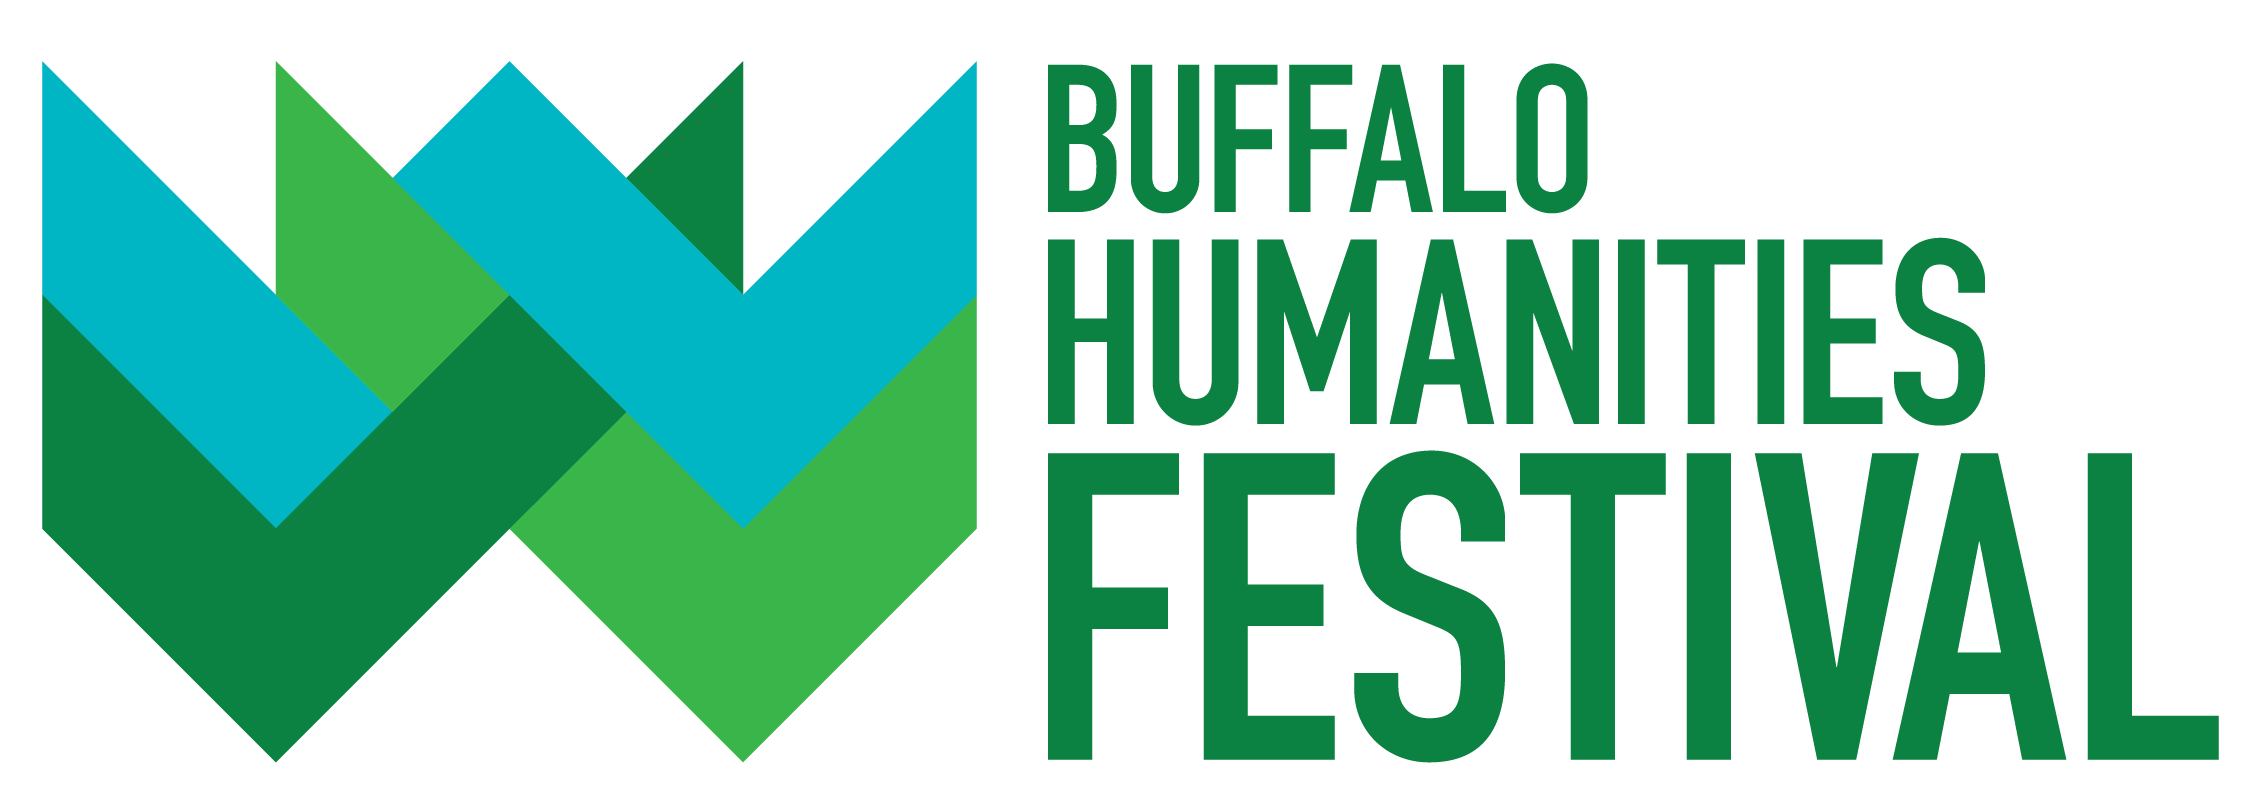 Buffalo Humanities Festival